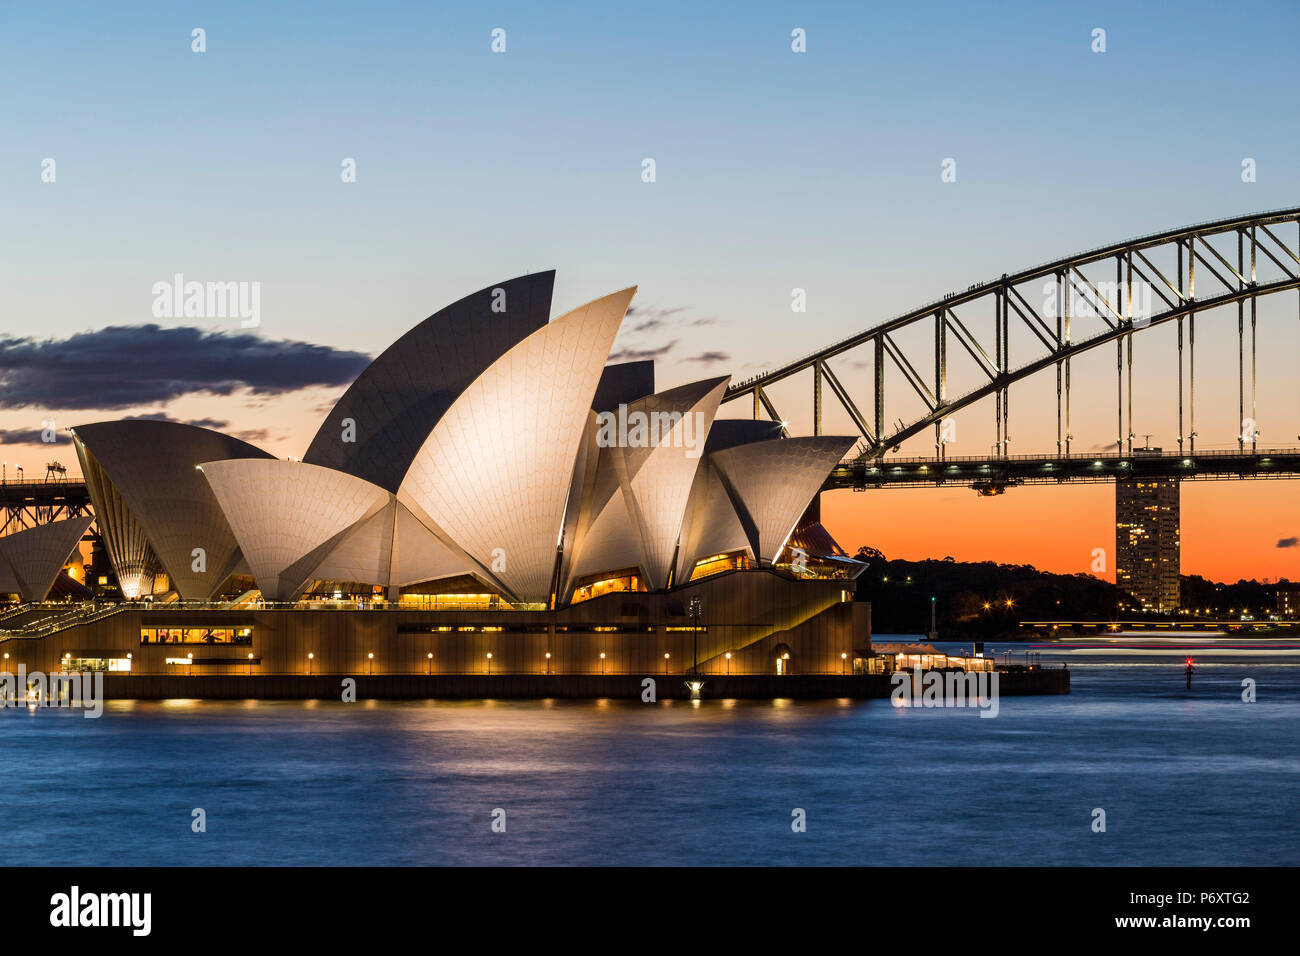 Sydney bei Sonnenuntergang. Oper von Mrs Macquaries Chair. New South Wales, Australien Stockfoto